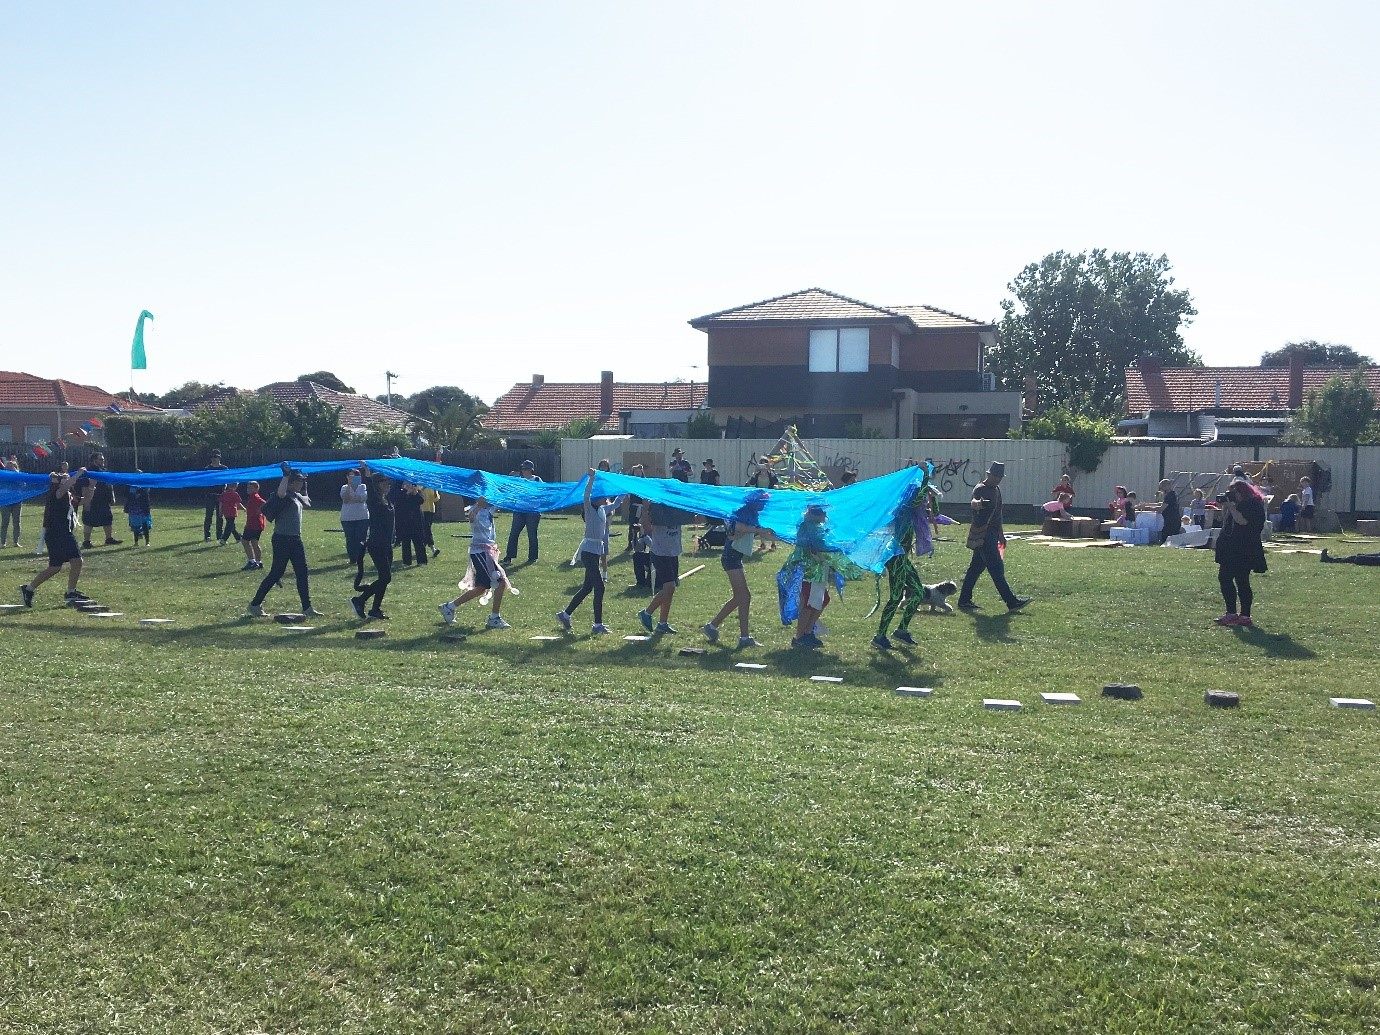 Children perform Interpretive dance depicting the history of the waterway and the animals who lived there